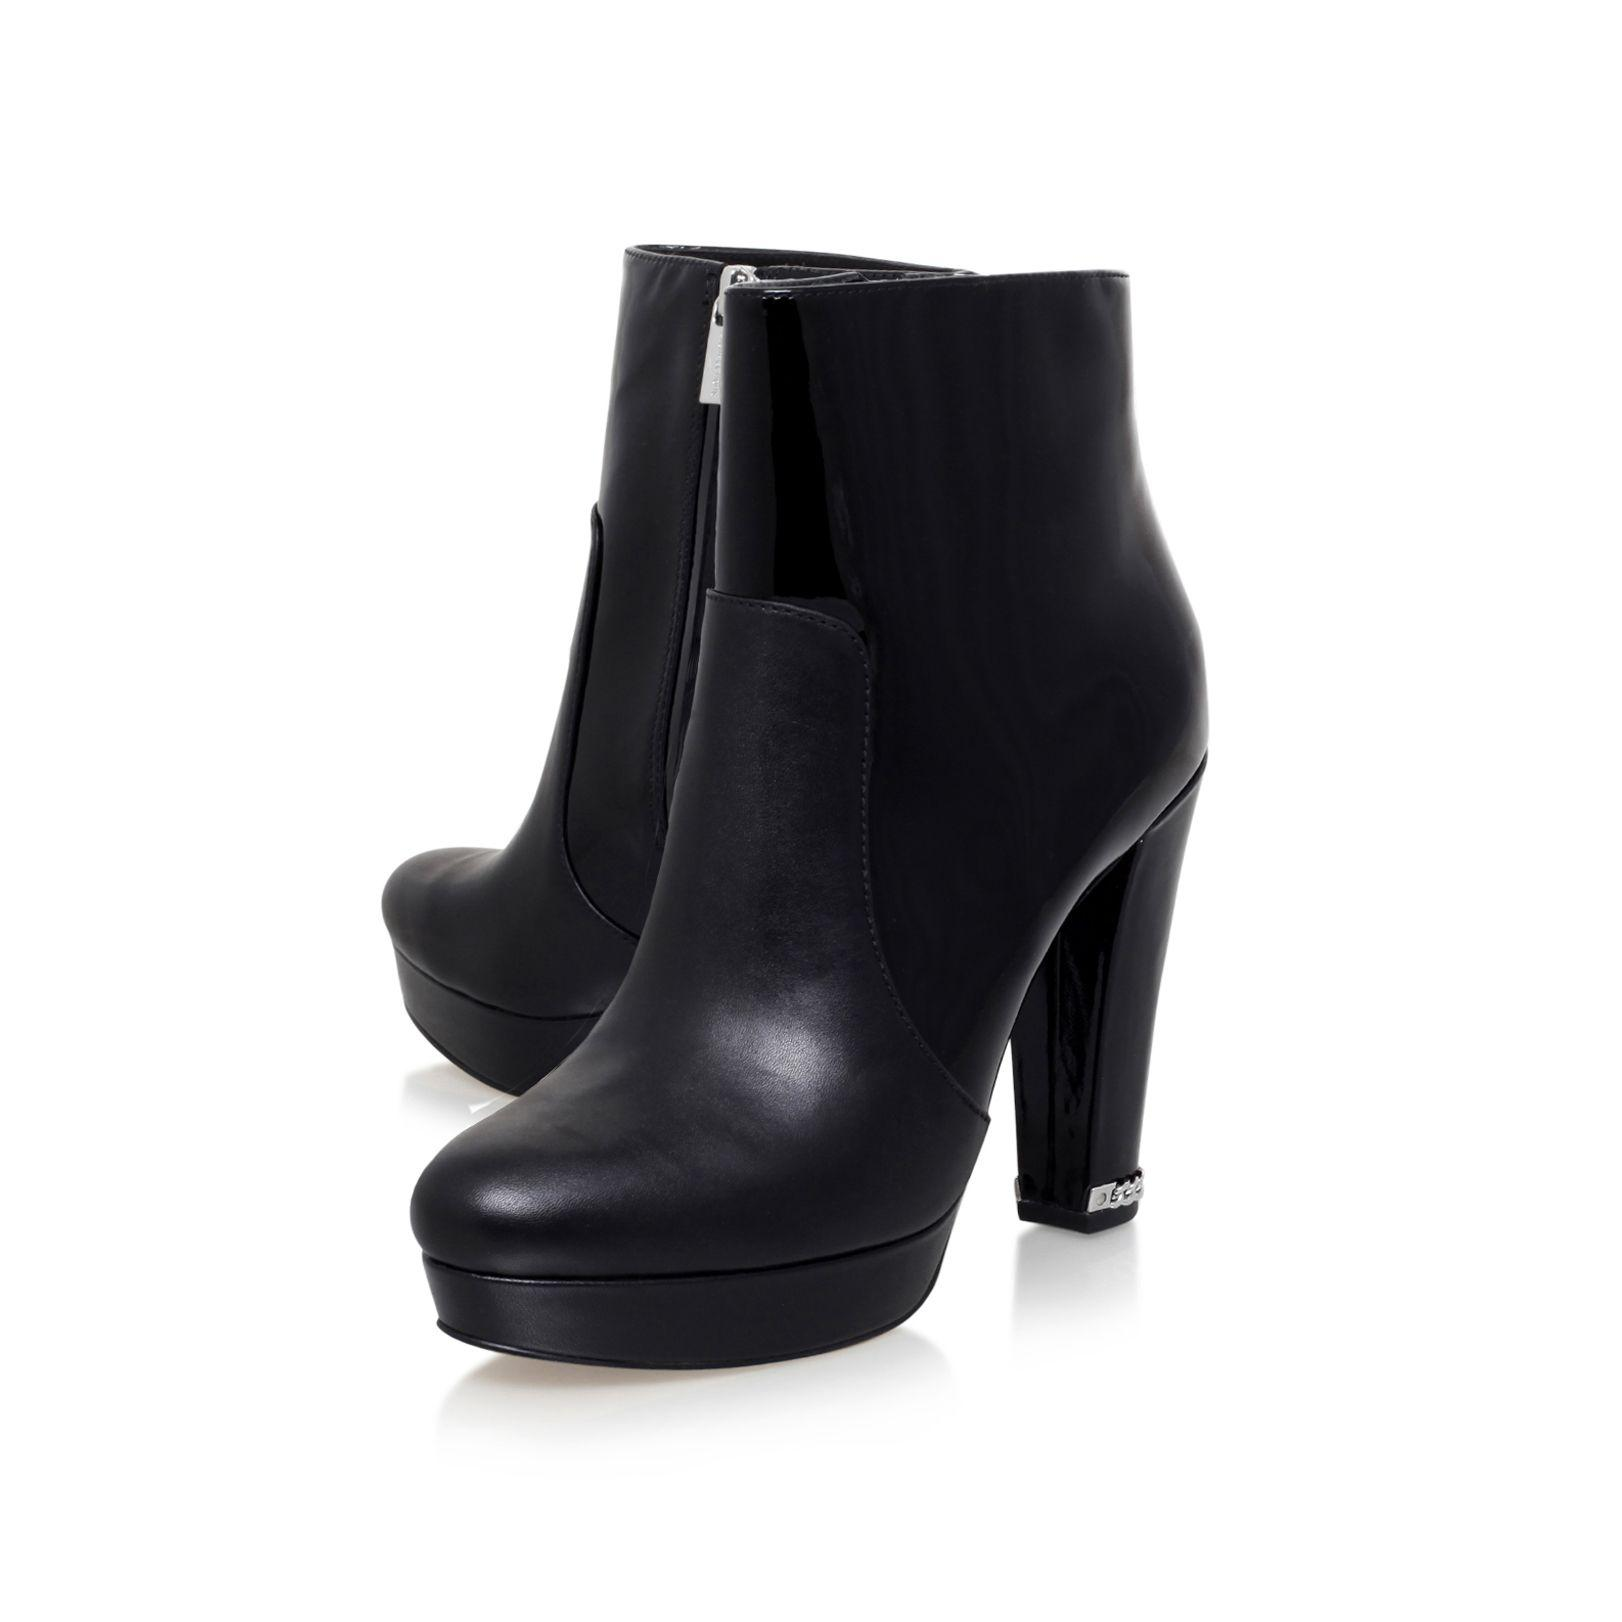 Michael Kors Leather Sabrina High Heel Ankle Boots in Black